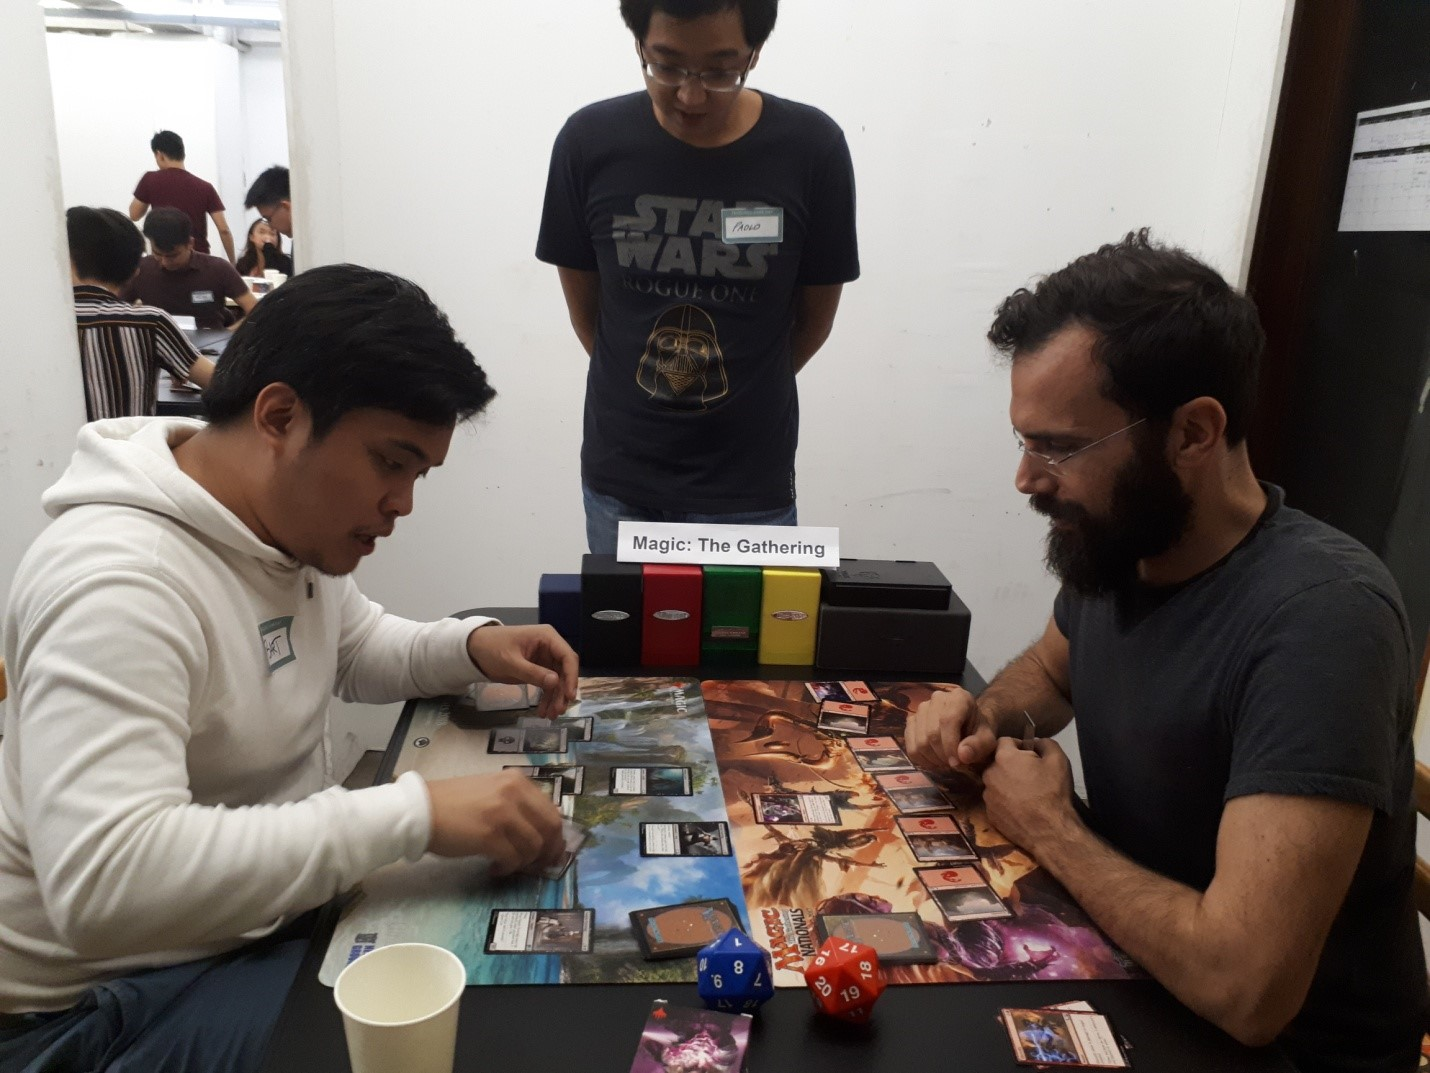 Truelogic CEO Itamar Gero, on the right and account manager Marc Joseph Bartolome, on the left; me, content writer Paolo Torres, in the middle. A grudge match may be in the offing.